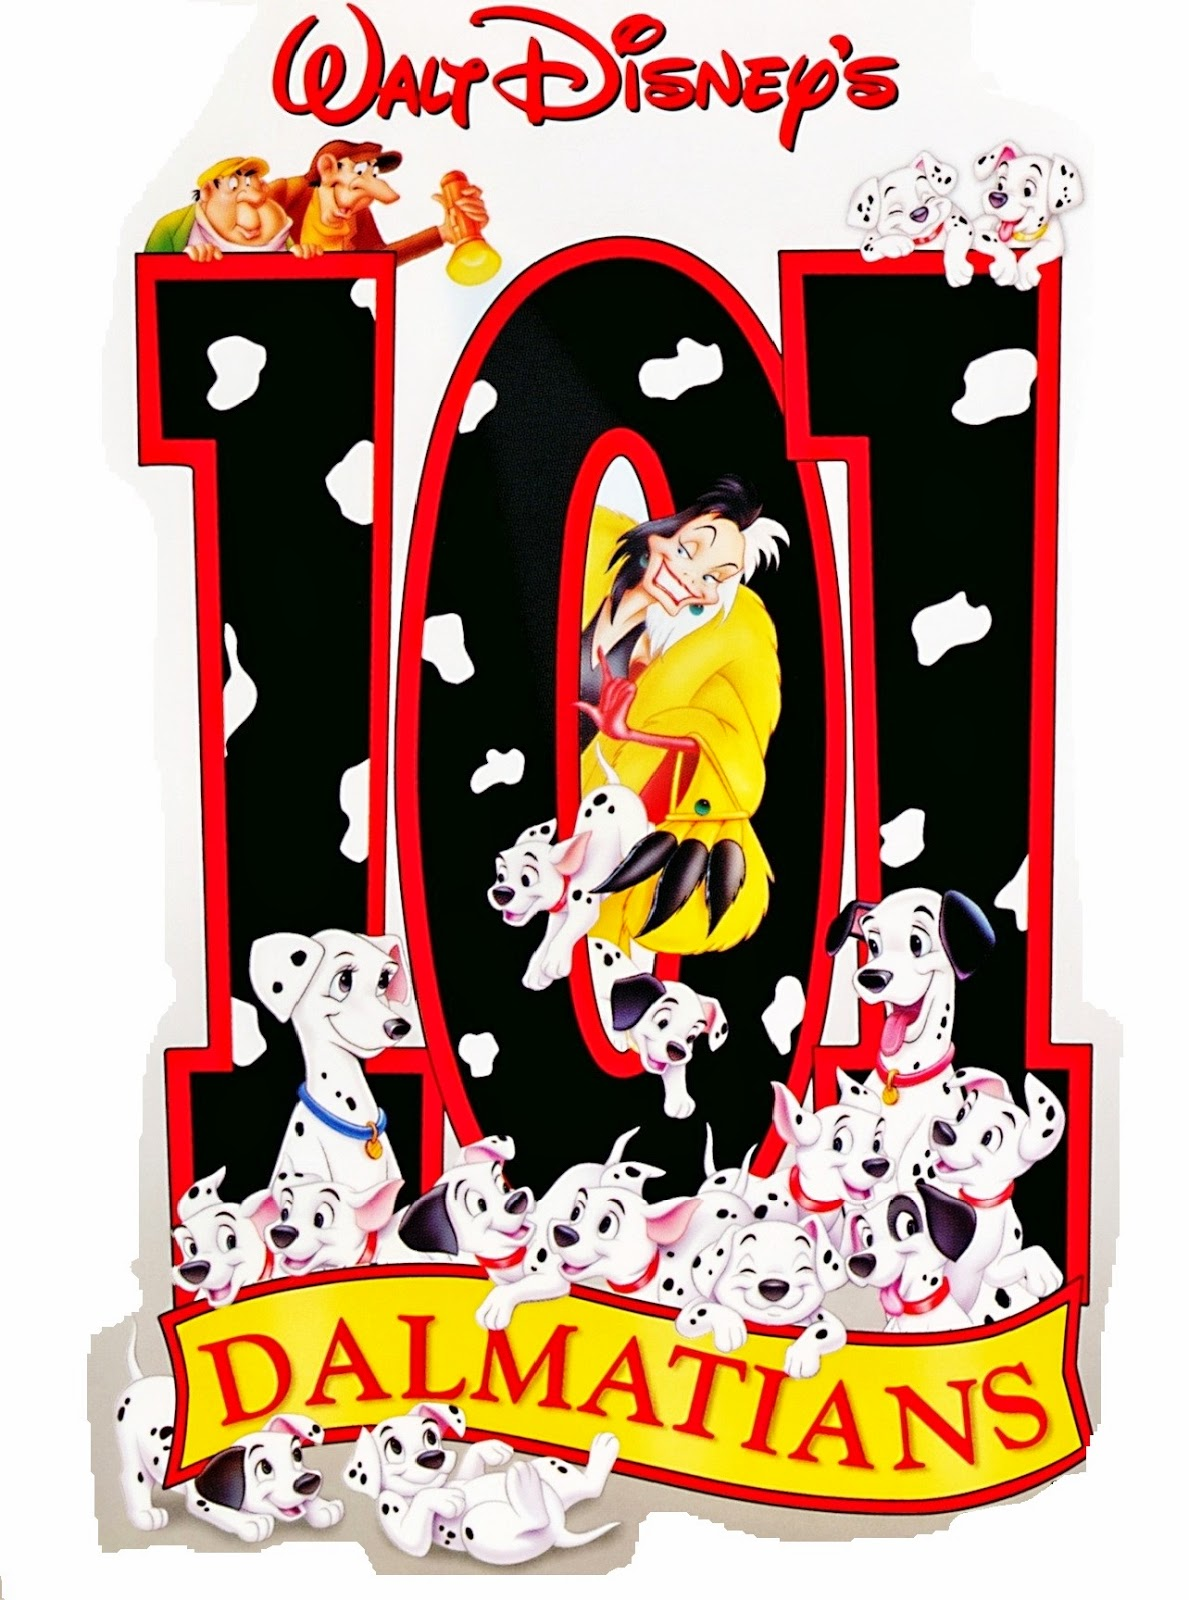 101 Dalmatians Free Printable Notebook Oh My Fiesta in english